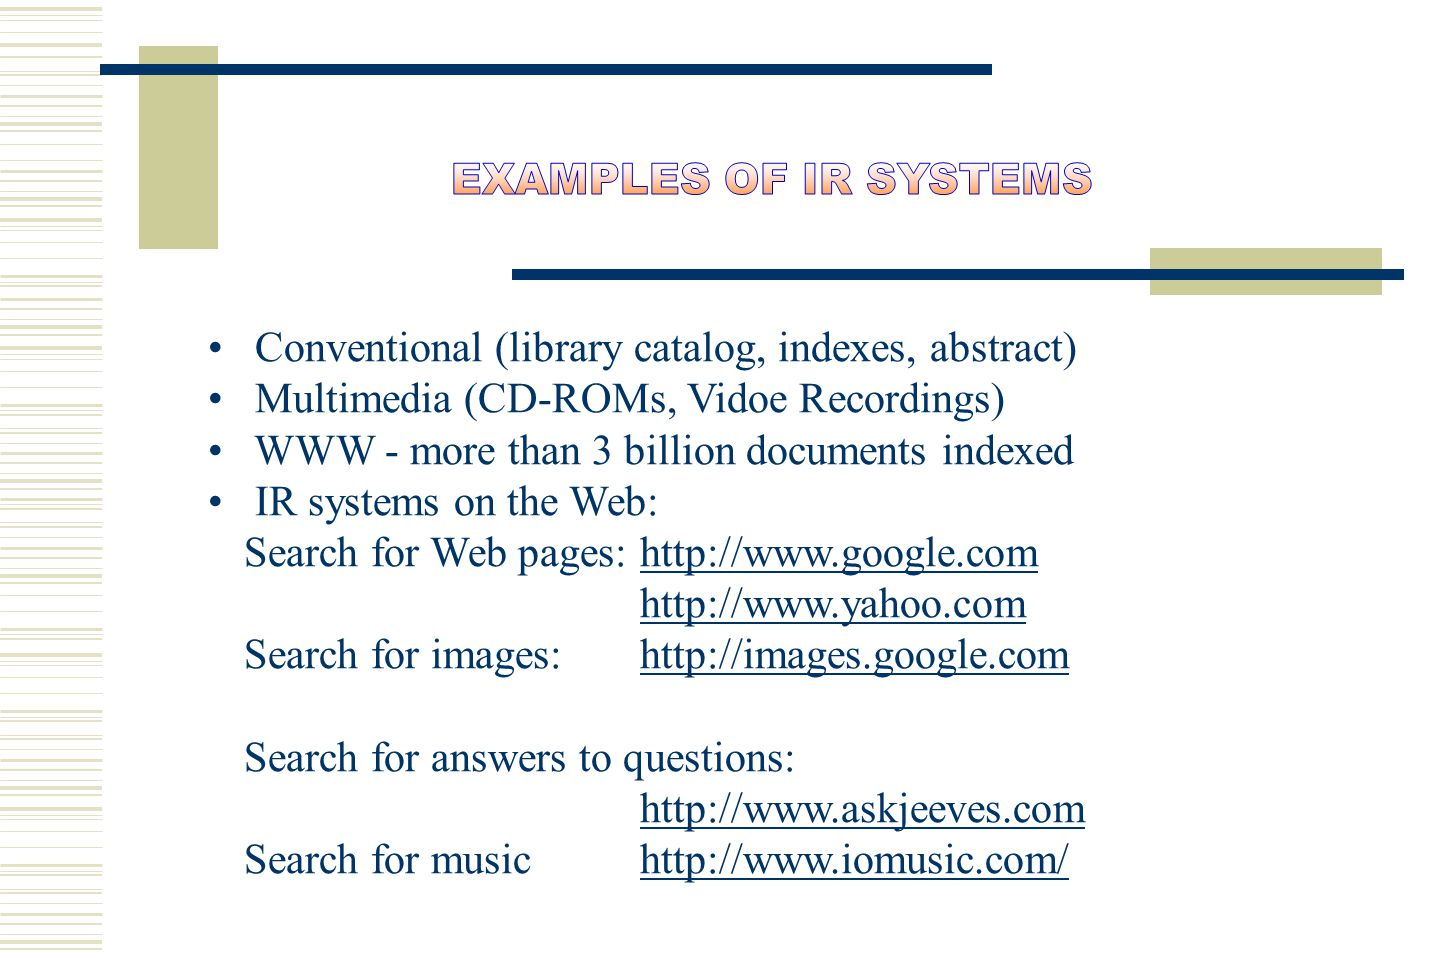 Conventional (library catalog, indexes, abstract) Multimedia (CD-ROMs, Vidoe Recordings) WWW - more than 3 billion documents indexed IR systems on the